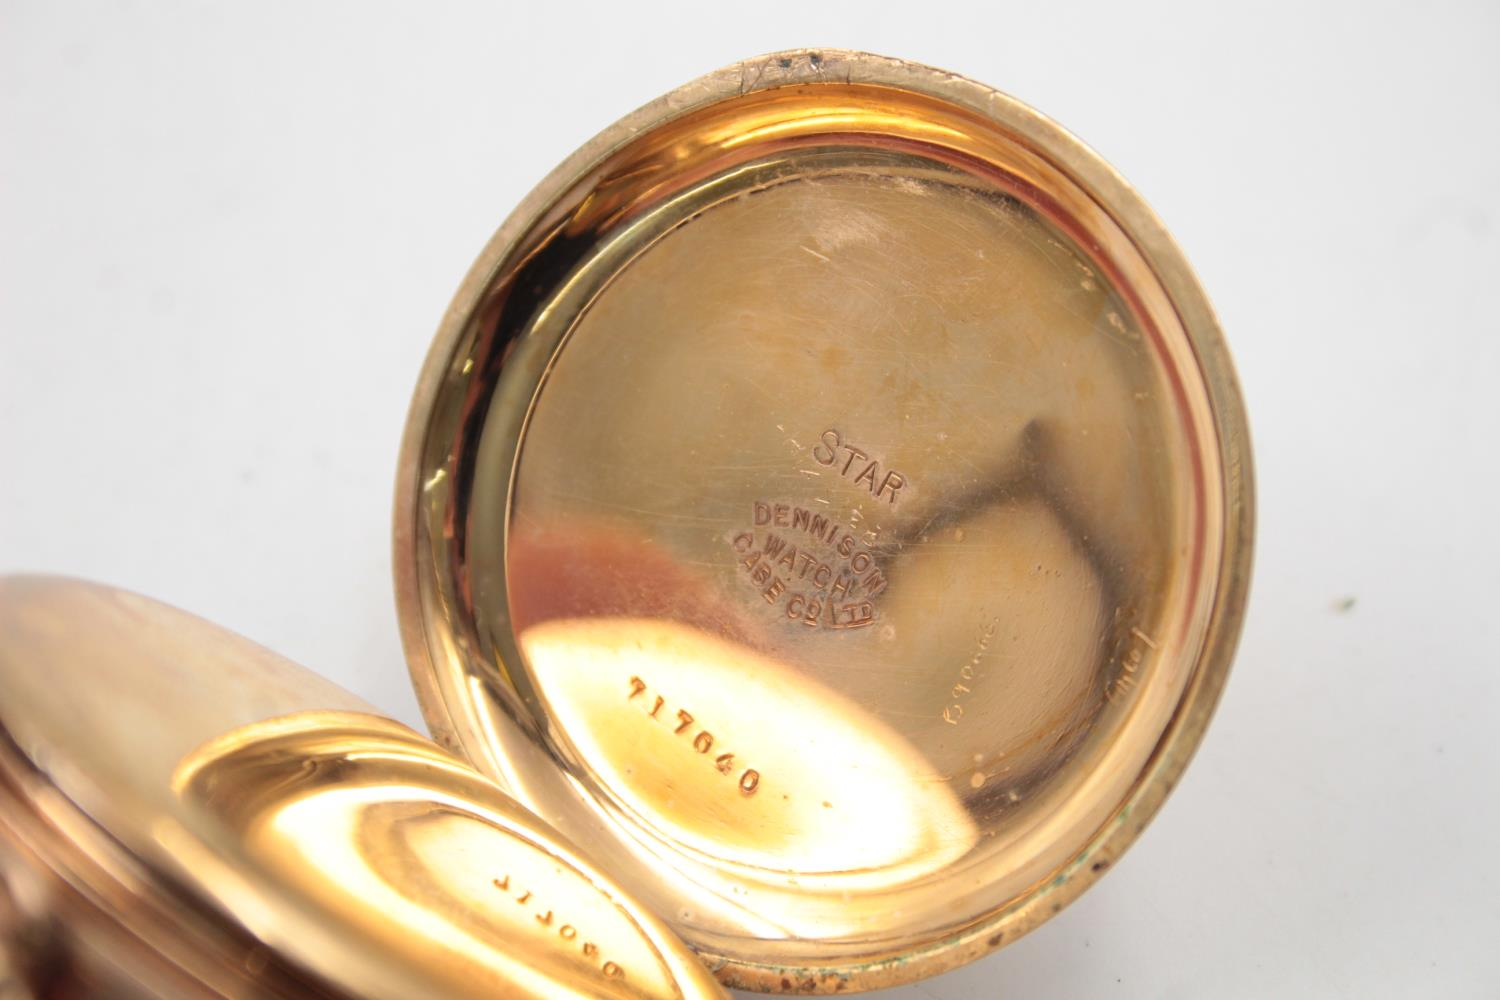 Vintage Gents WALTHAM Rolled Gold Open Face POCKET WATCH Hand-Wind (102g) - Image 6 of 6